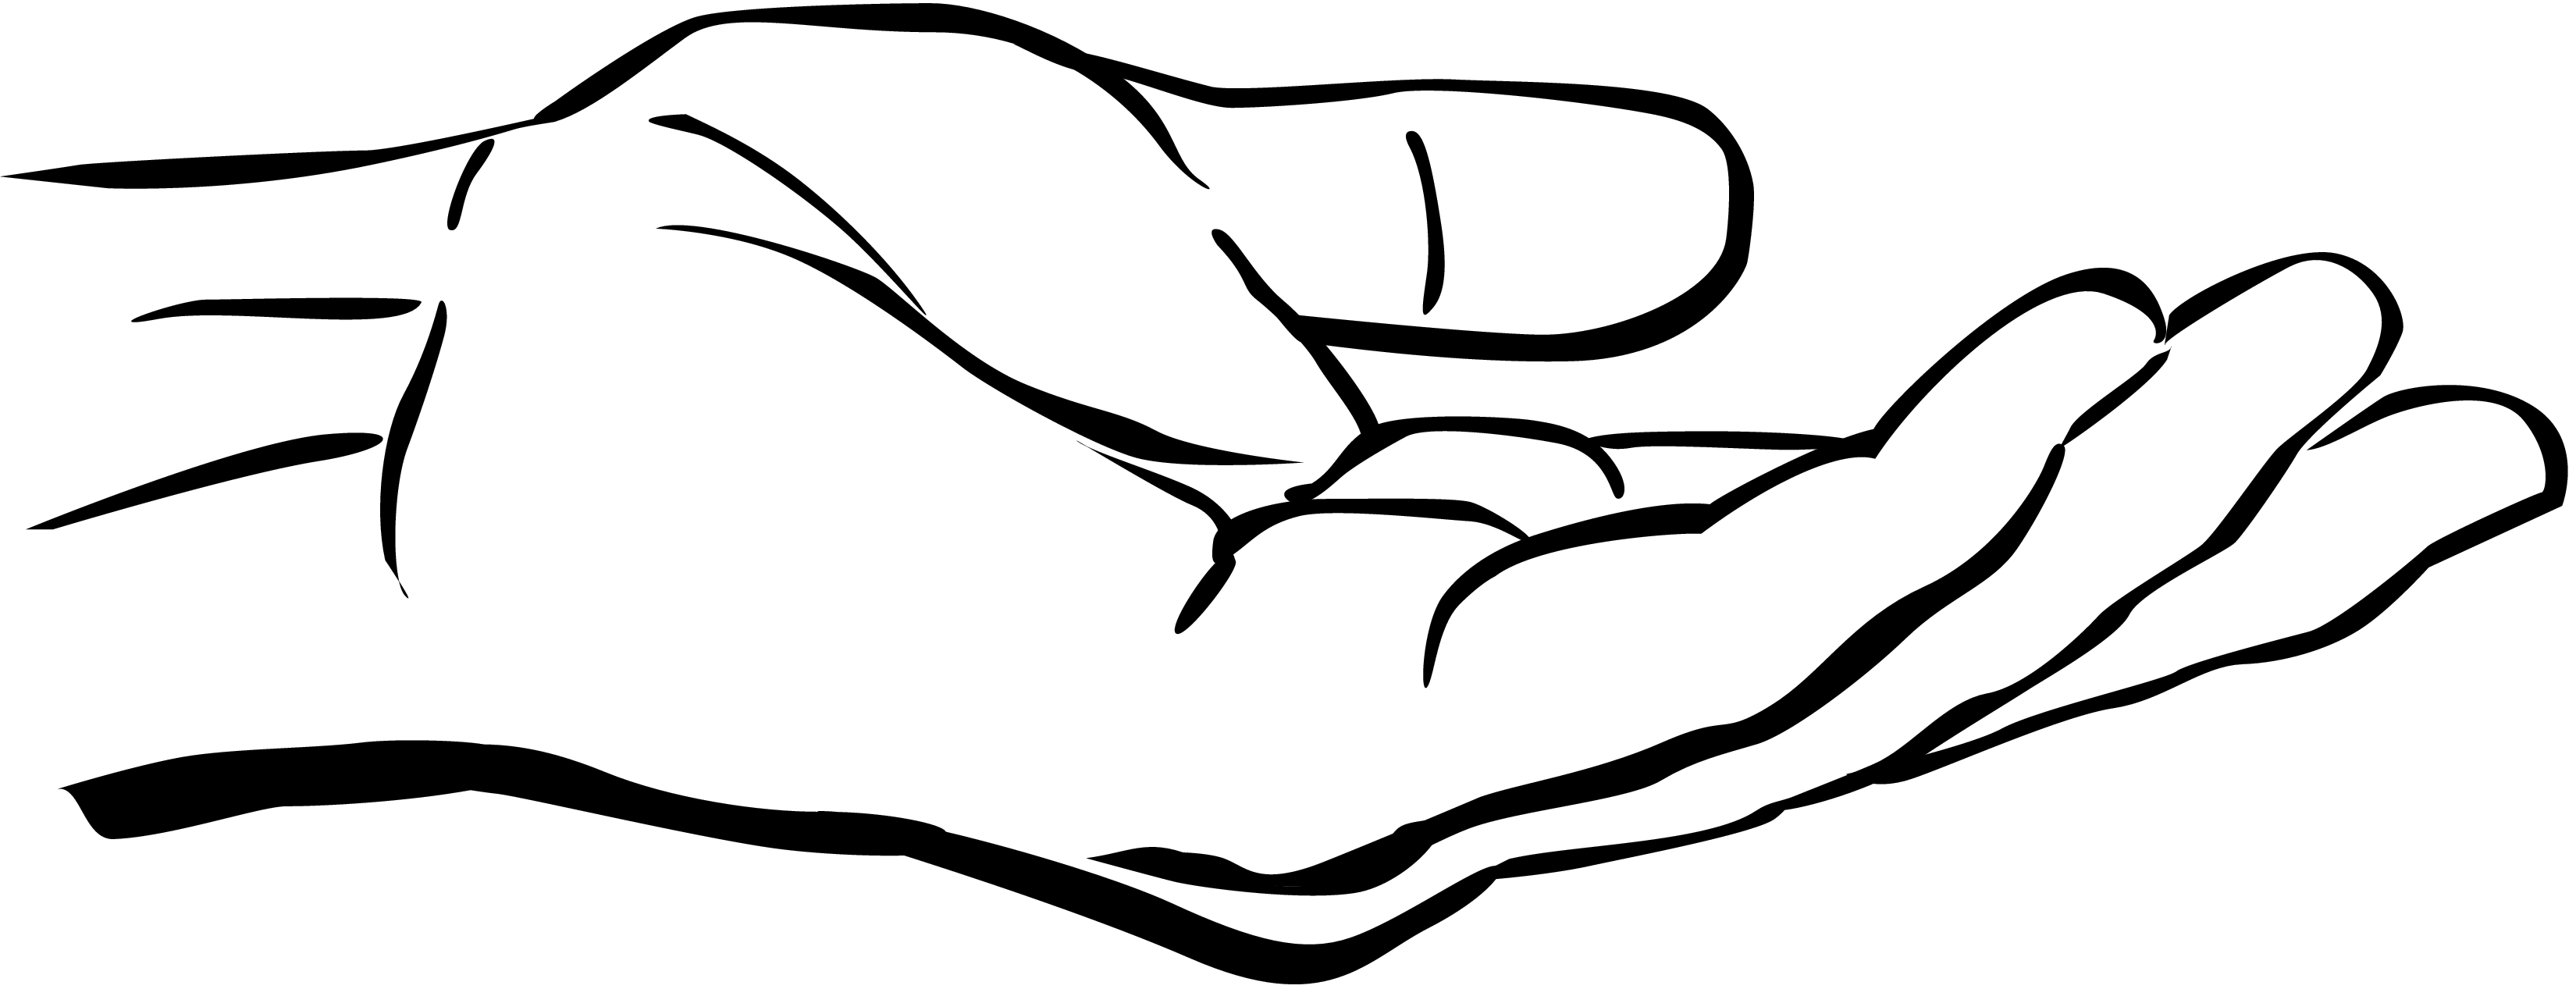 3300x1267 Clip Art Of Hands Many Interesting Cliparts